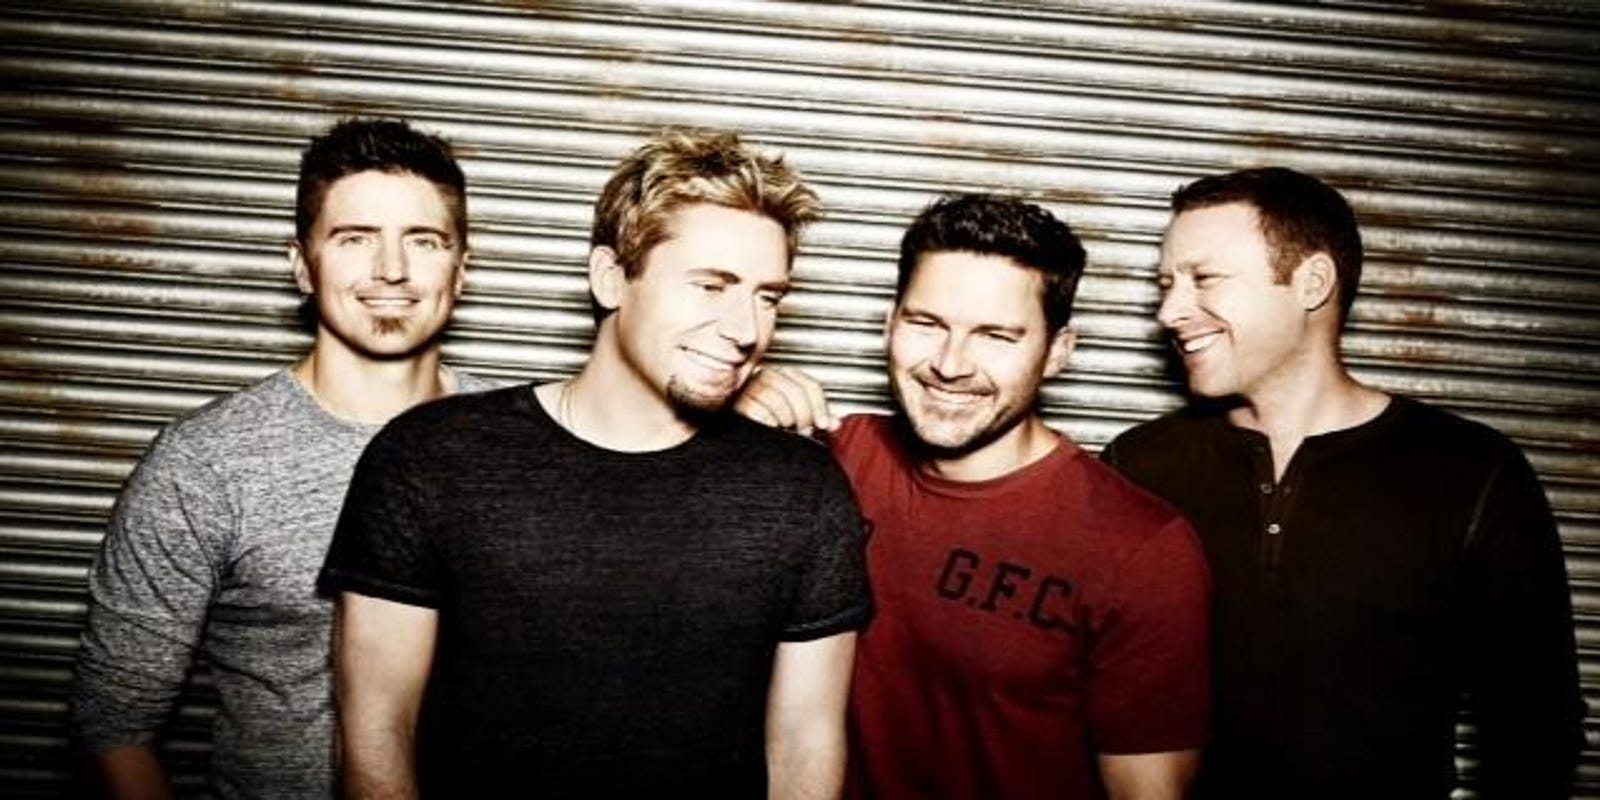 Nickelback is coming to Cincinnati and yes, they are definitely going to play 'Photograph'